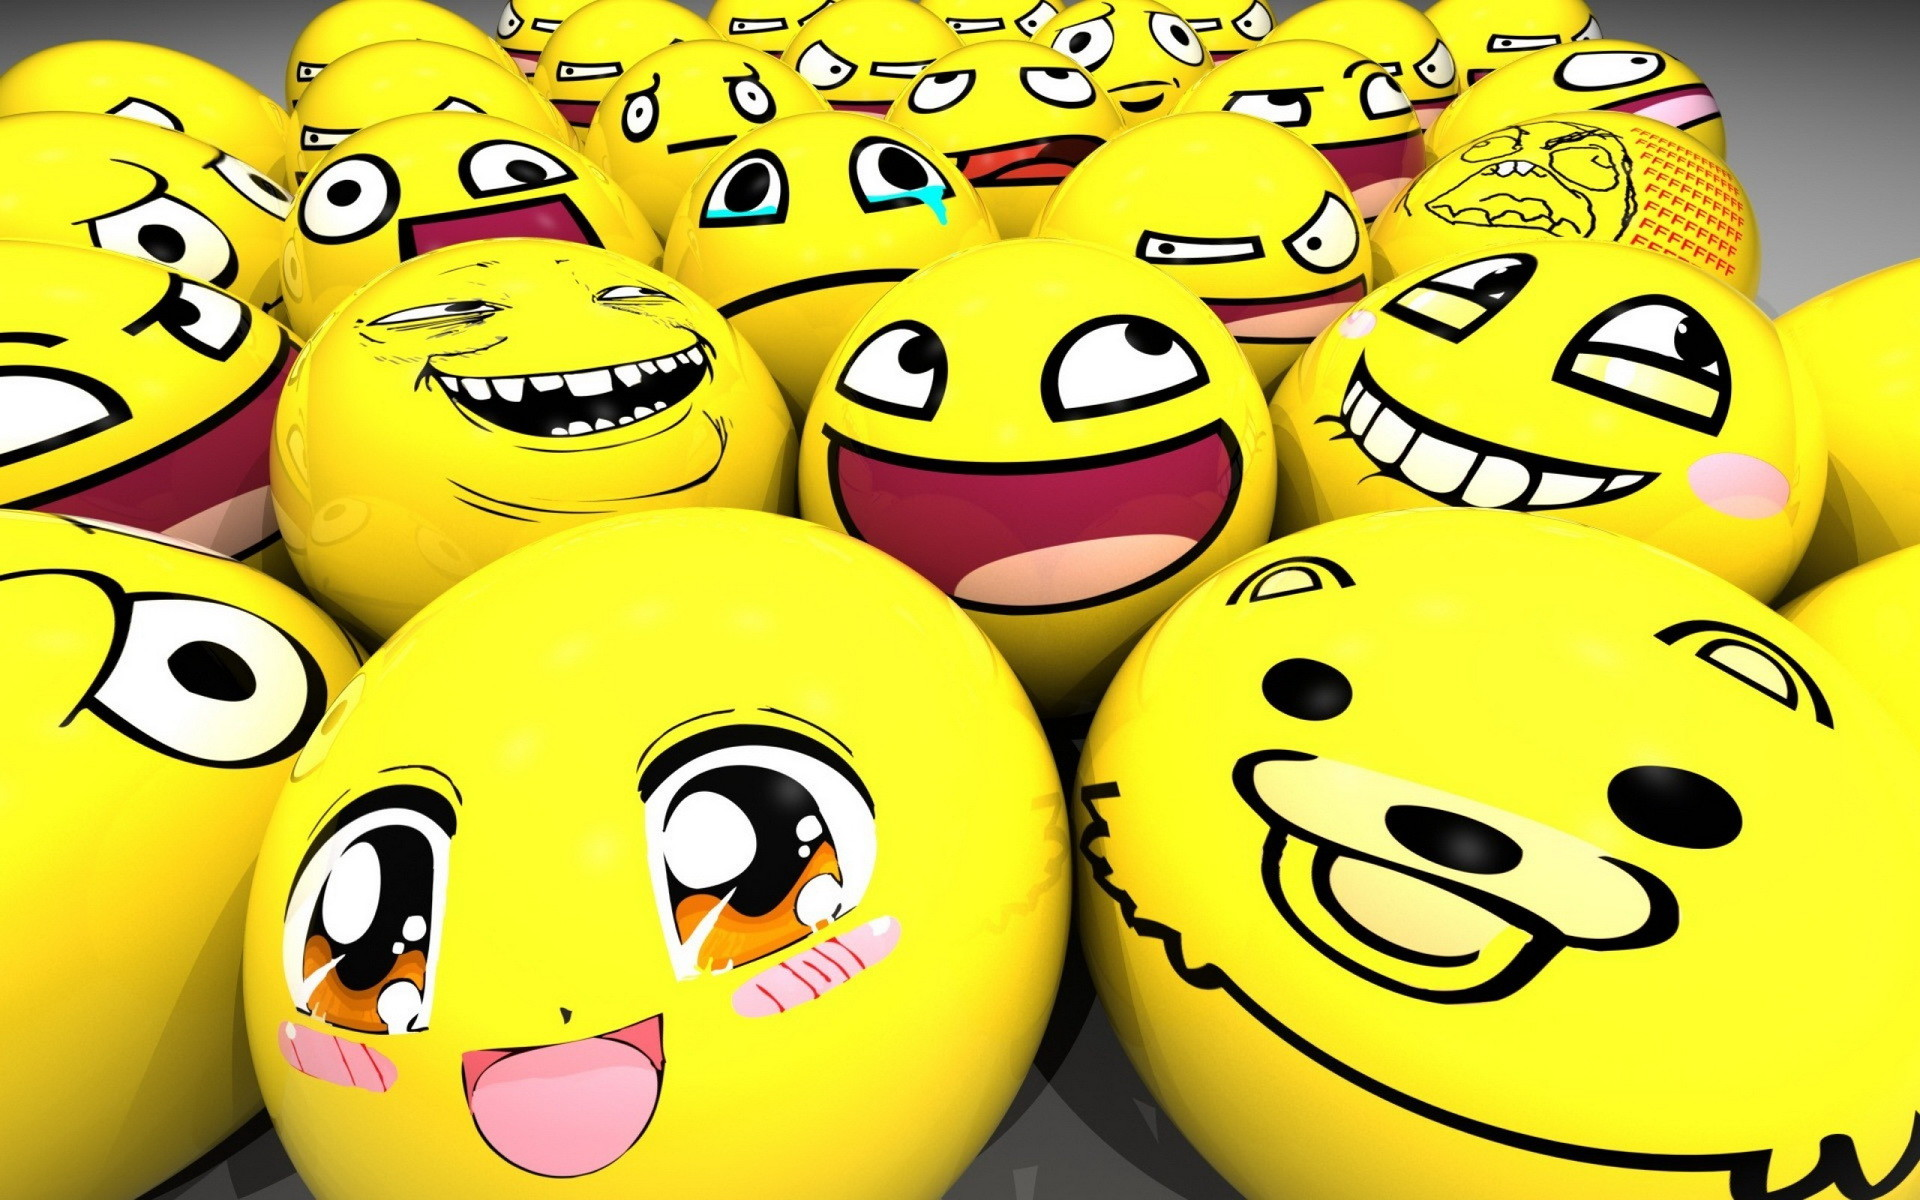 1920x1200 78 best images about emoji wallpaper on Pinterest